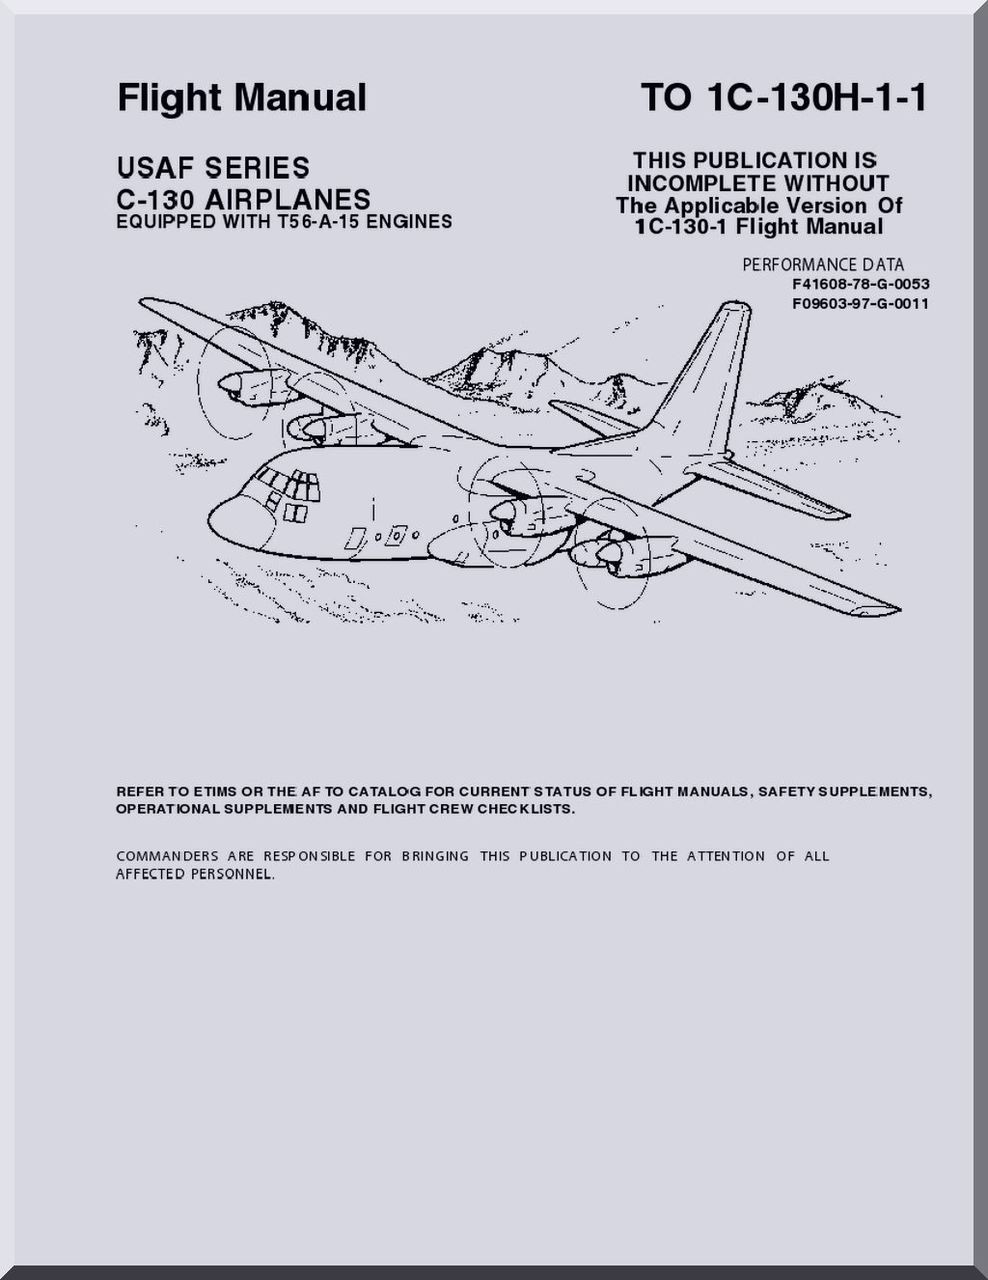 Lockheed C-130 H Aircraft Flight Manual, T.O. 1C-130H-1-1